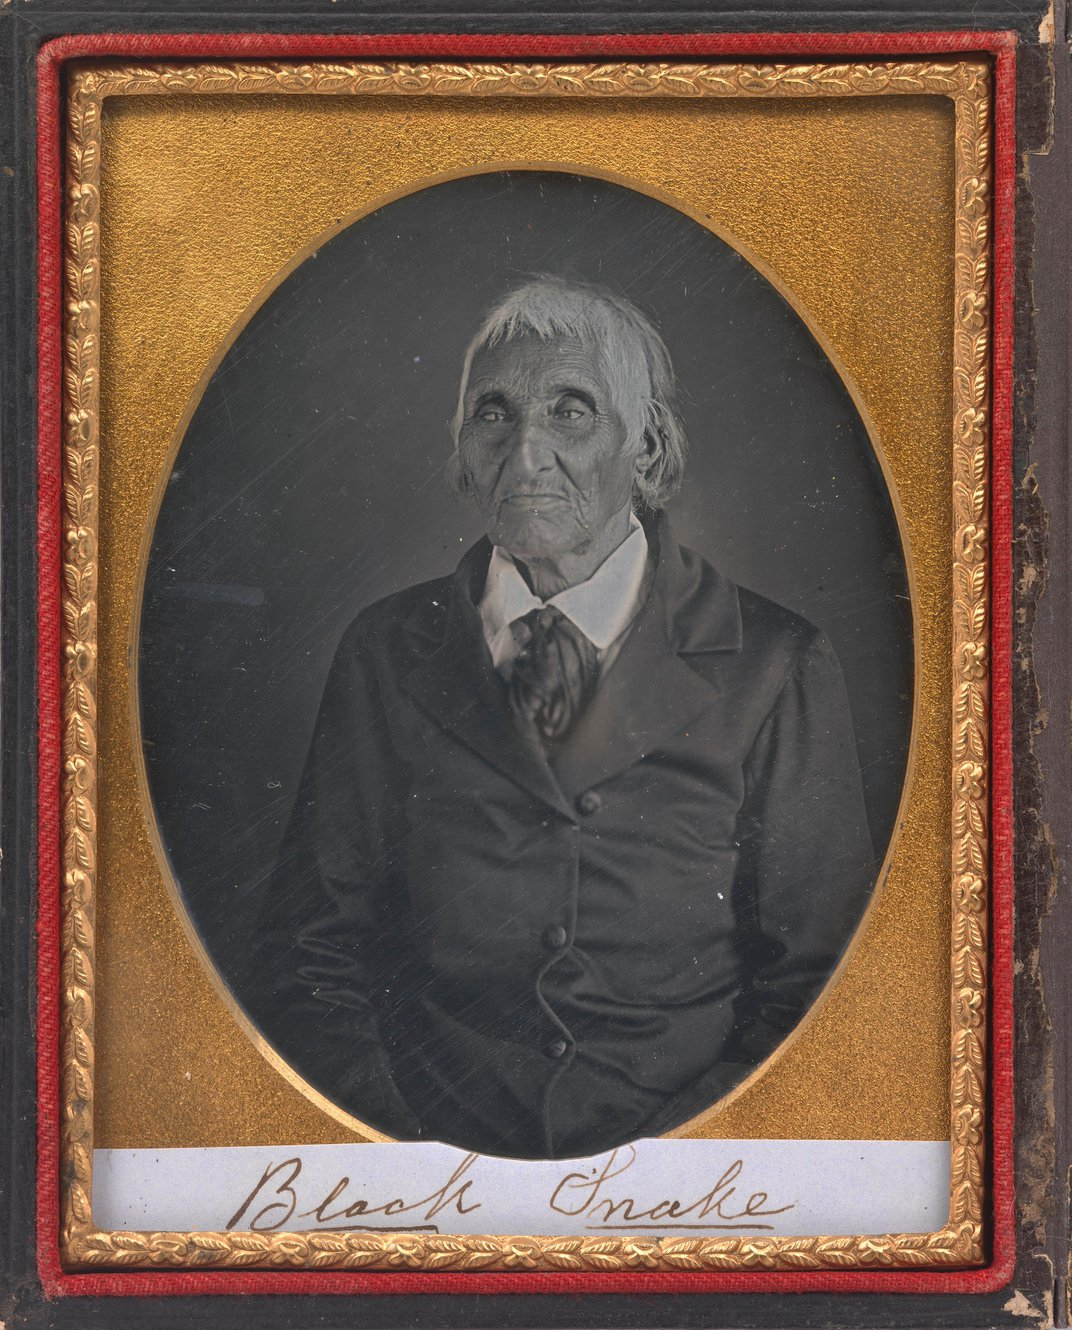 How Daguerreotype Photography Reflected a Changing America